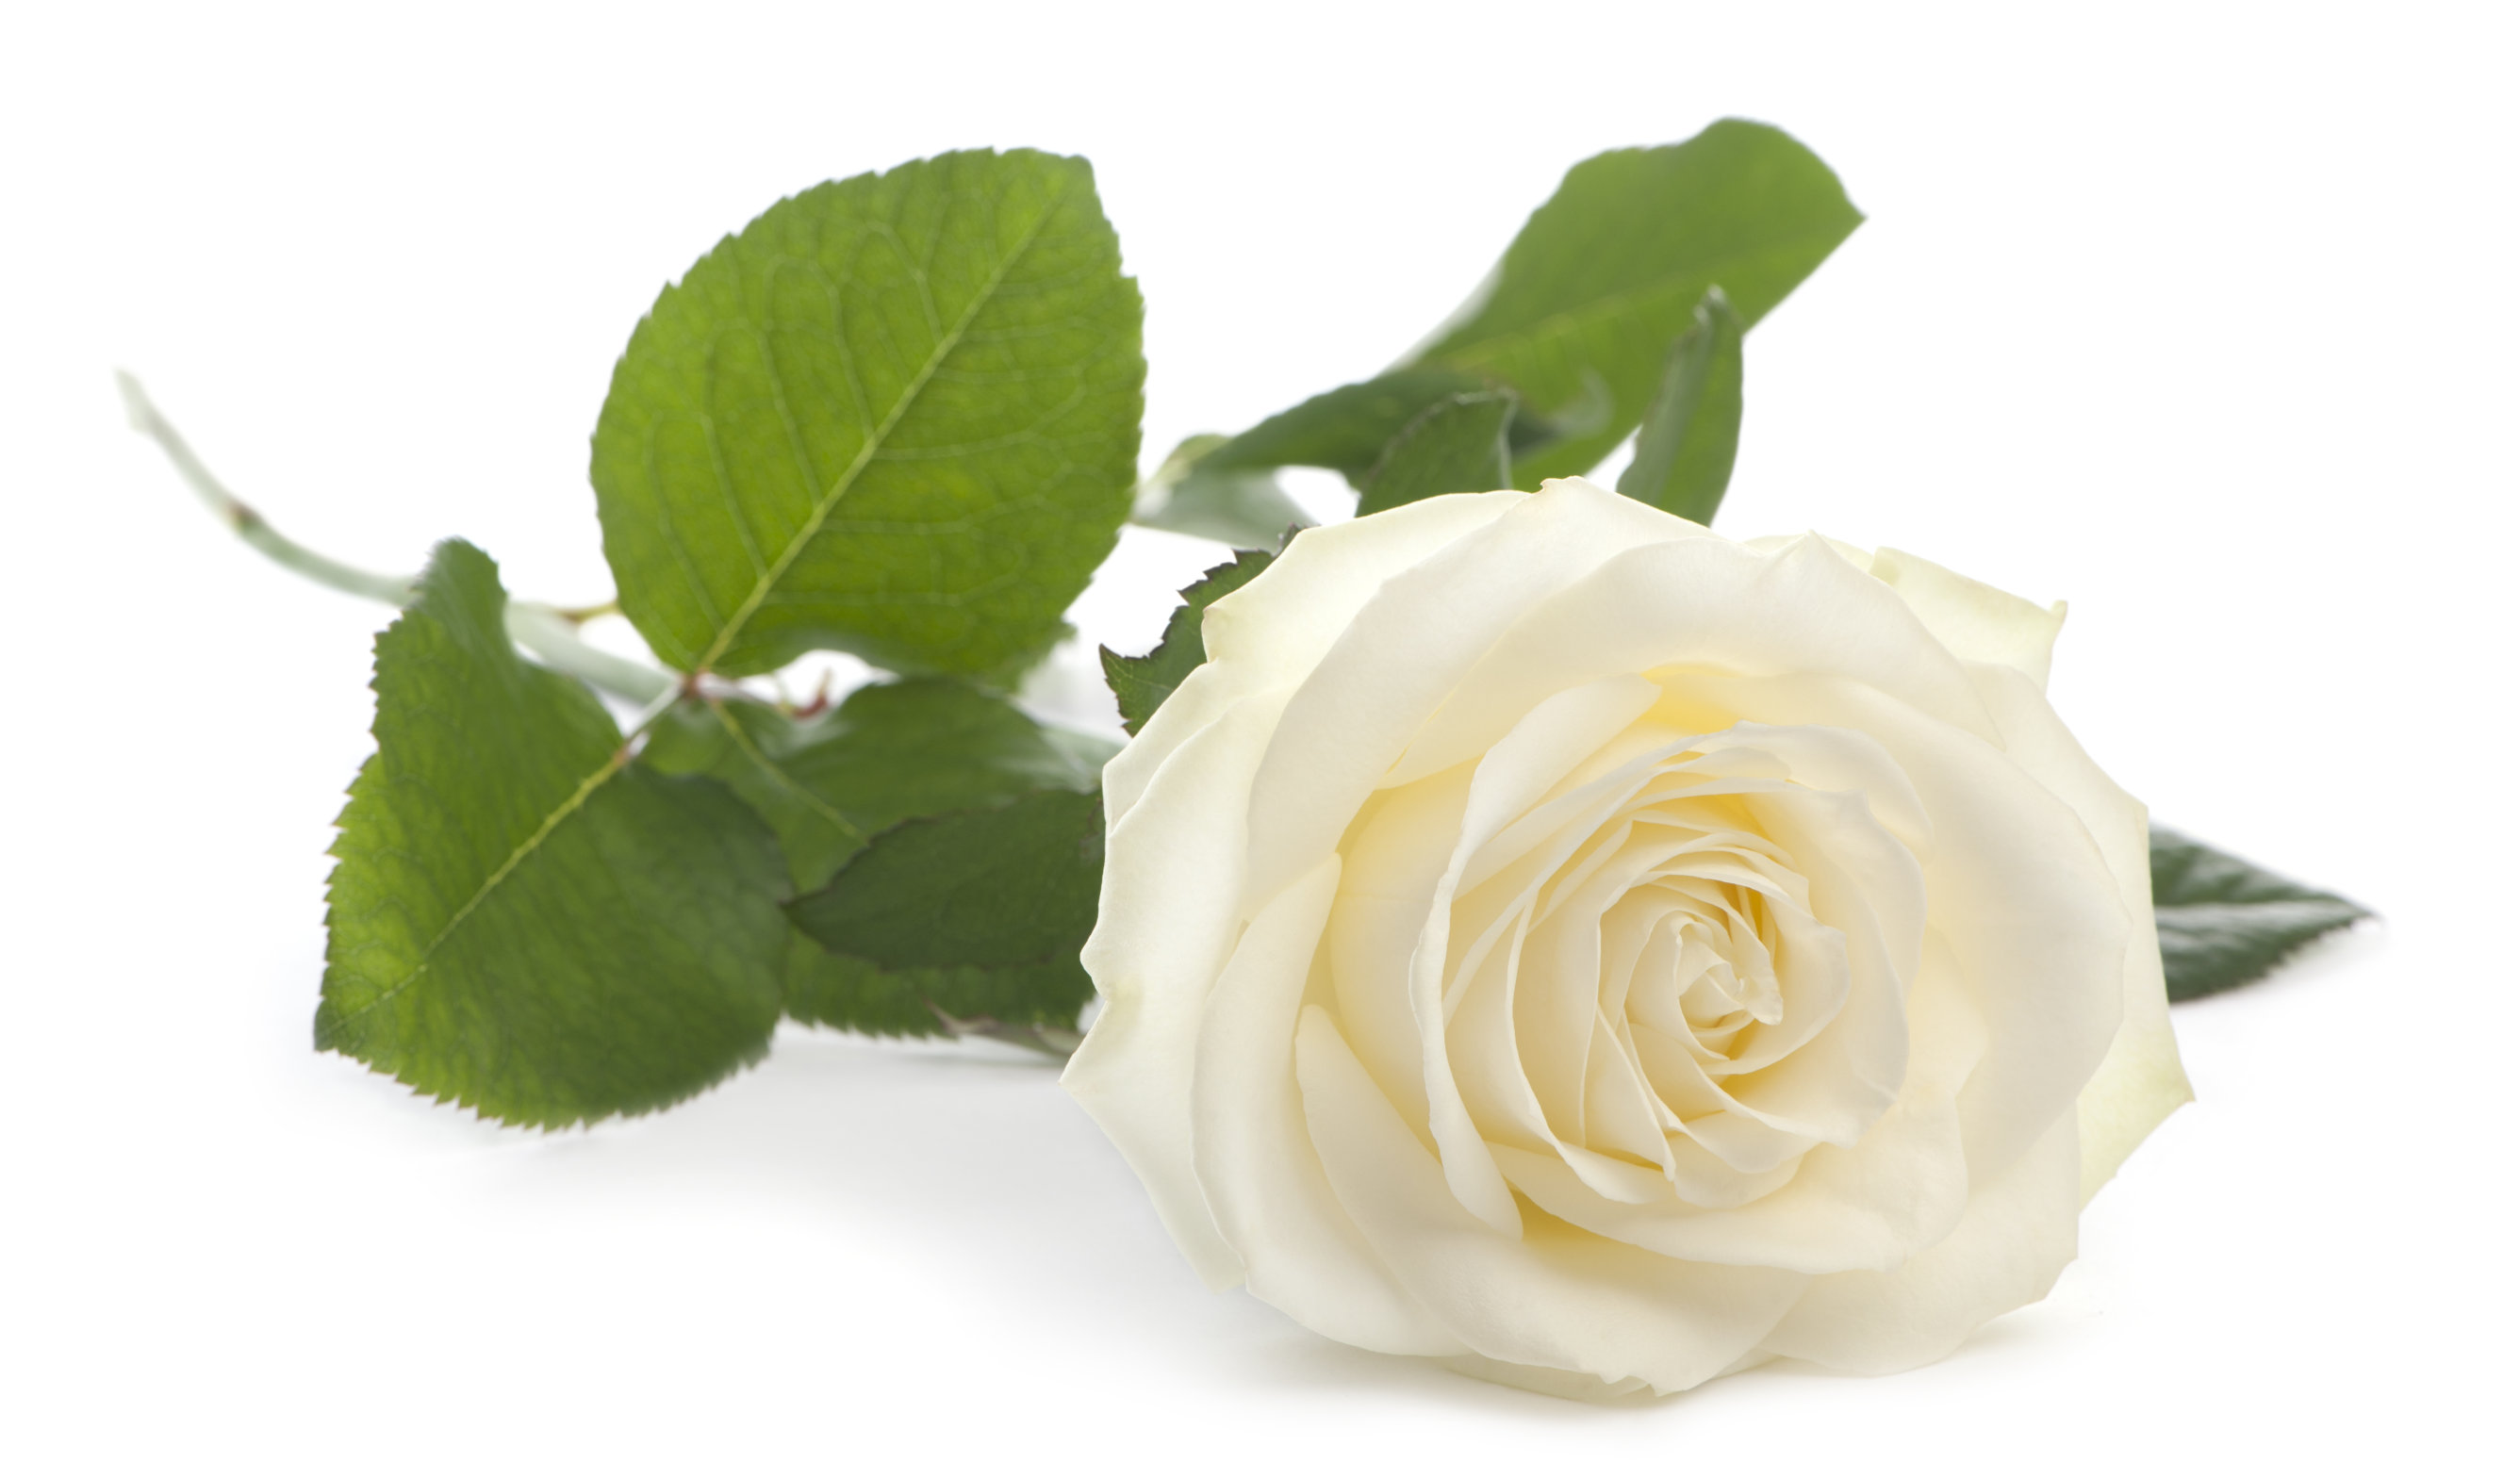 No rose without a thorn essay writer